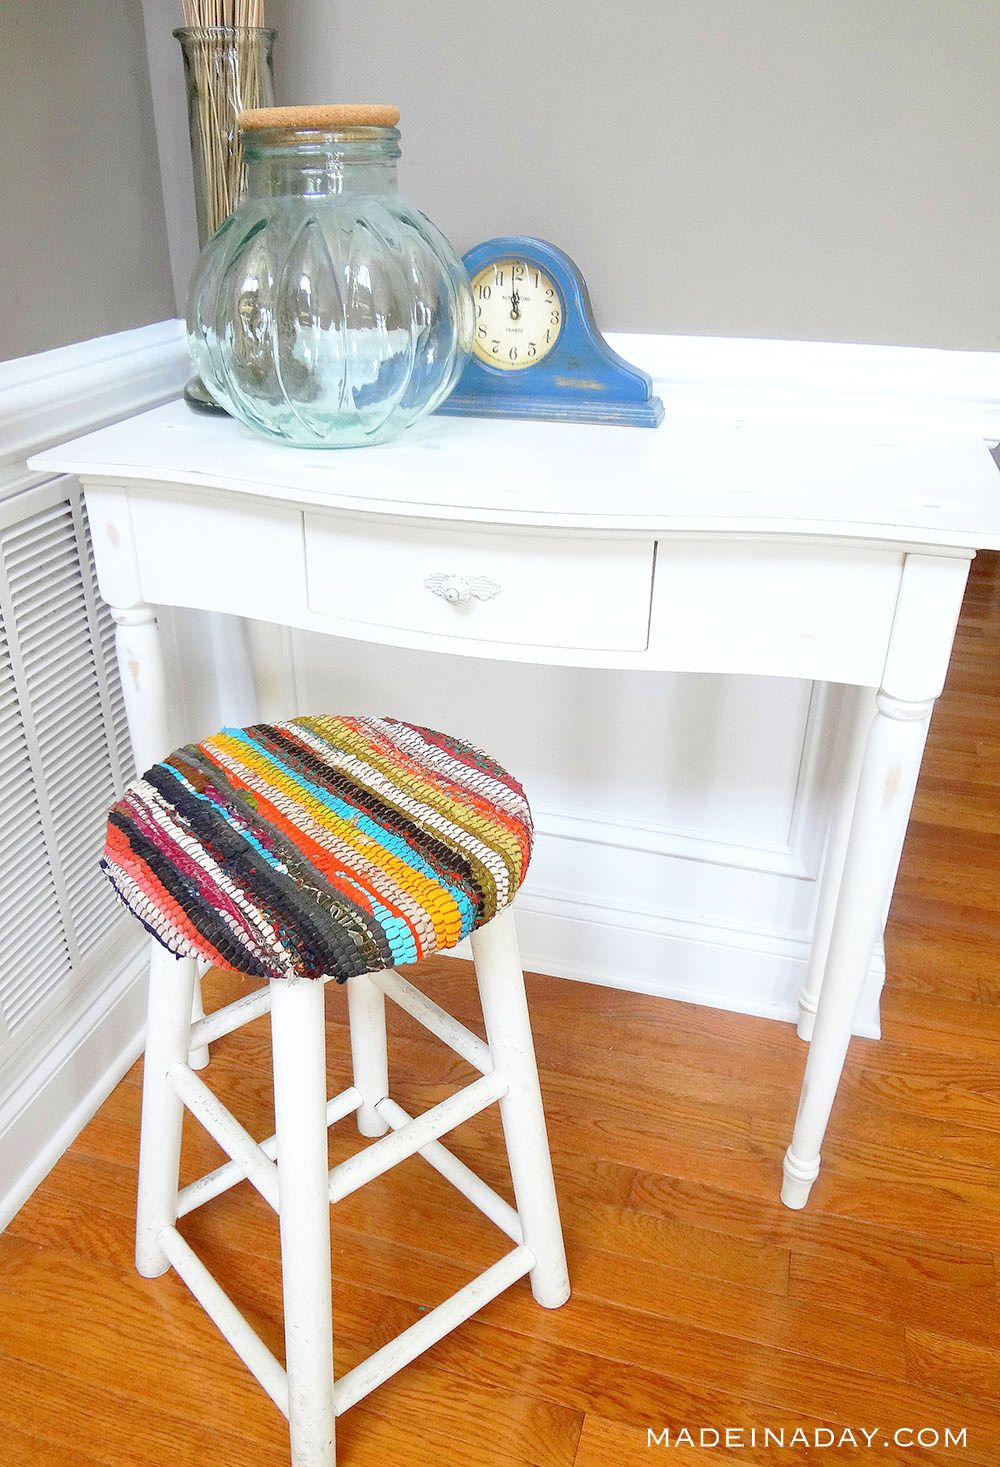 Recycled Fabric Rug Stool Upholstery Fabric For Chairs Redo Furniture Recycled Rugs